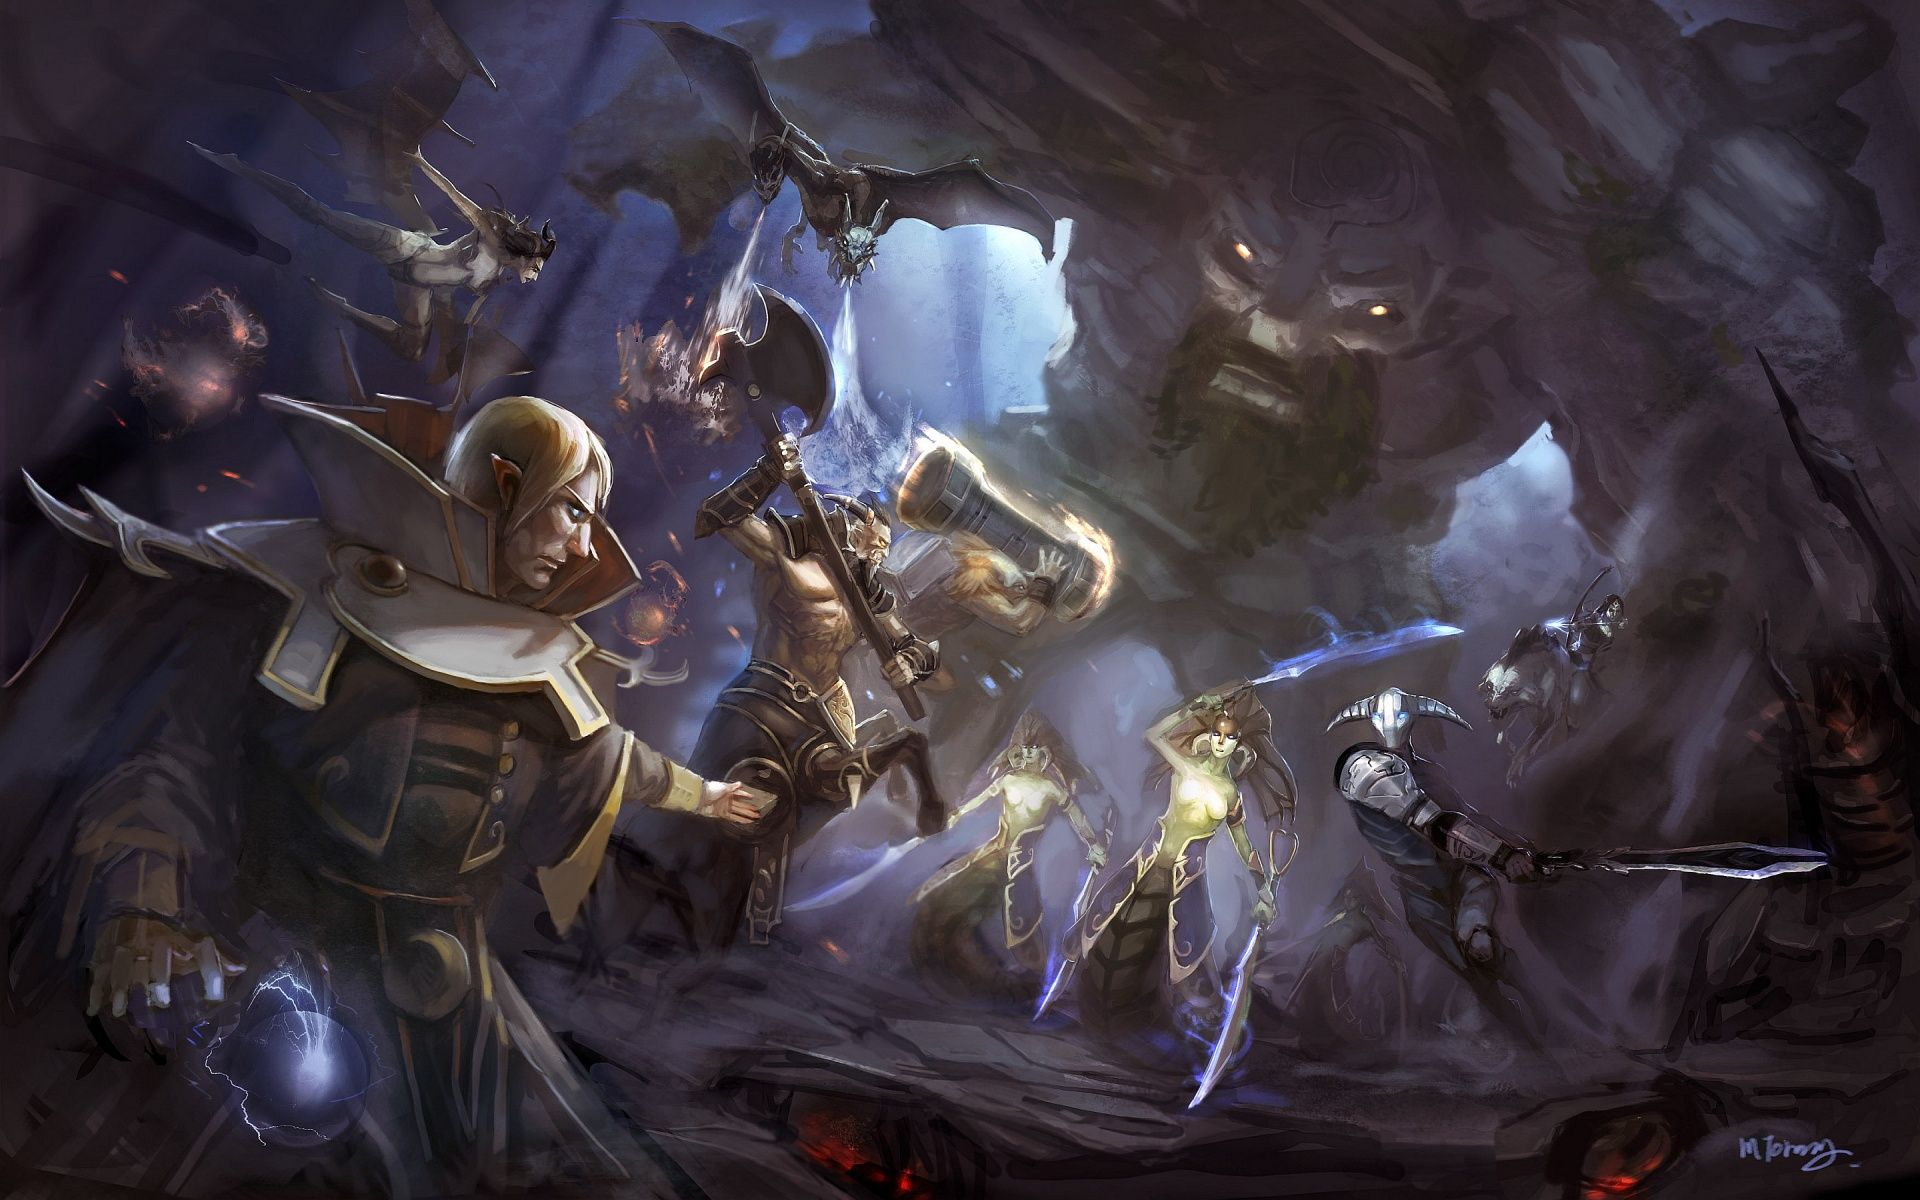 Ultra Hd Dota 2 Art 1920 1200 Dota 2 Dota2 Heroes Artwork